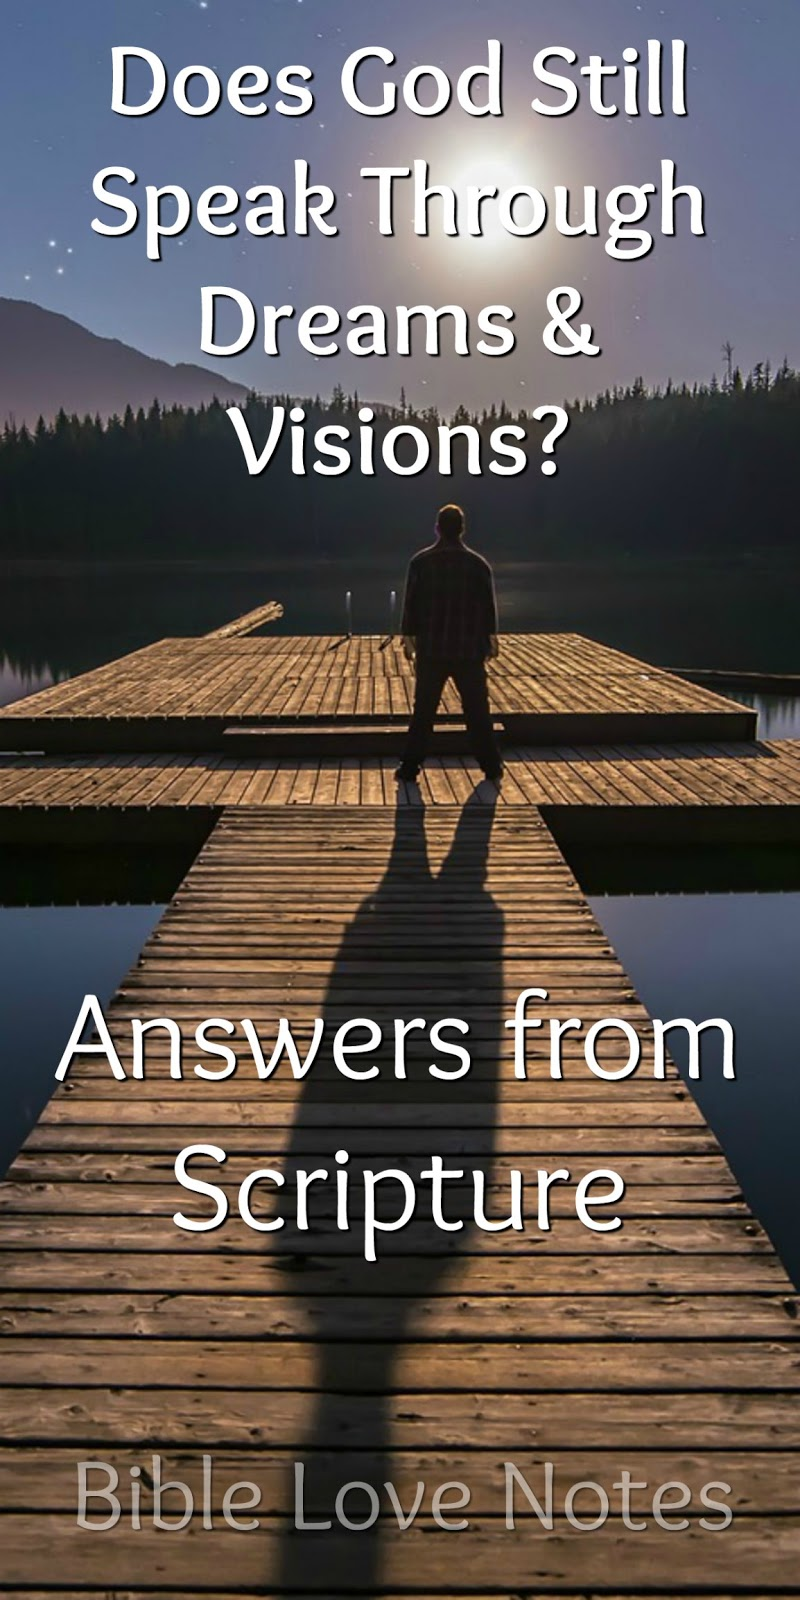 How did God use dreams and visions in the Bible?